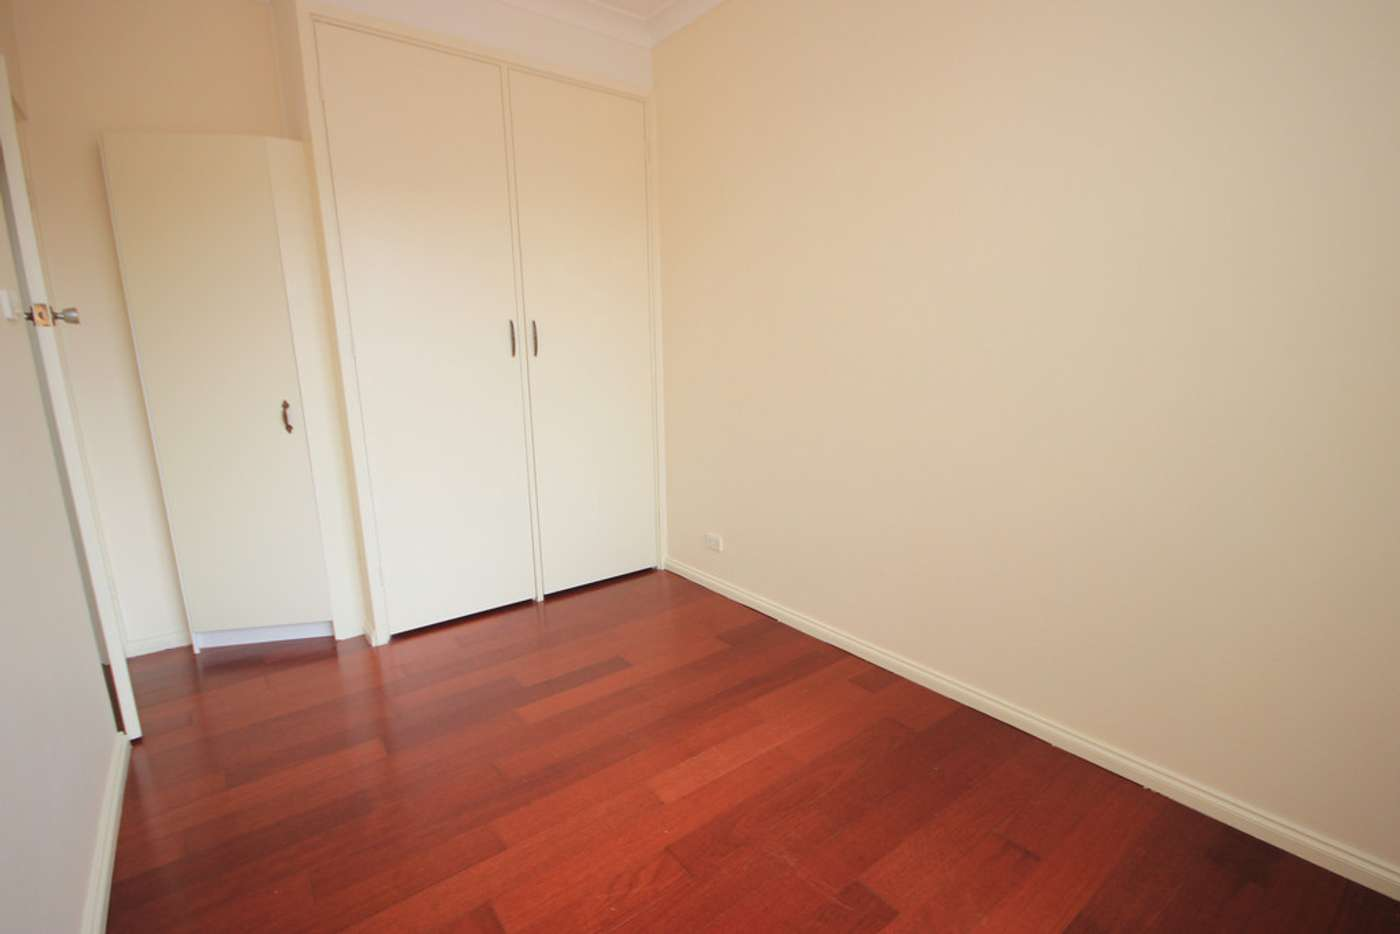 Sixth view of Homely unit listing, 154 Chuter Avenue, Sans Souci NSW 2219